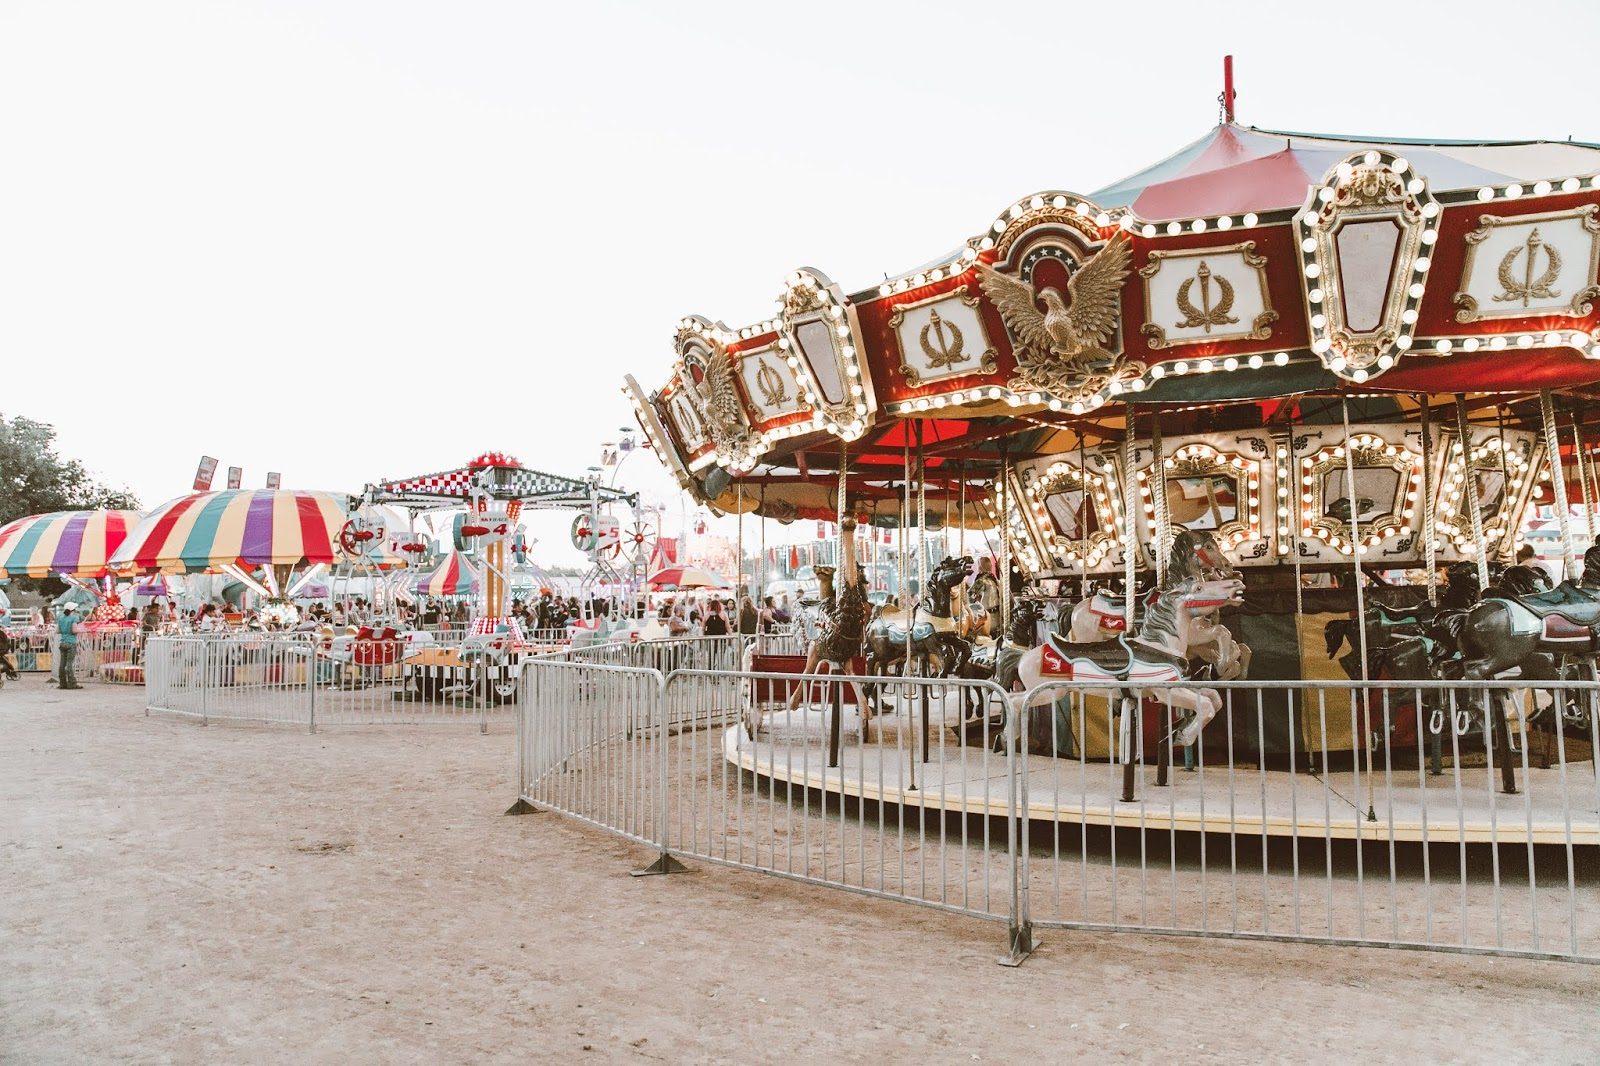 Shelly Stuckman, Yavapai County Fair, fall style 2018, merry-go-round, carousel, ArizonaGirl.com